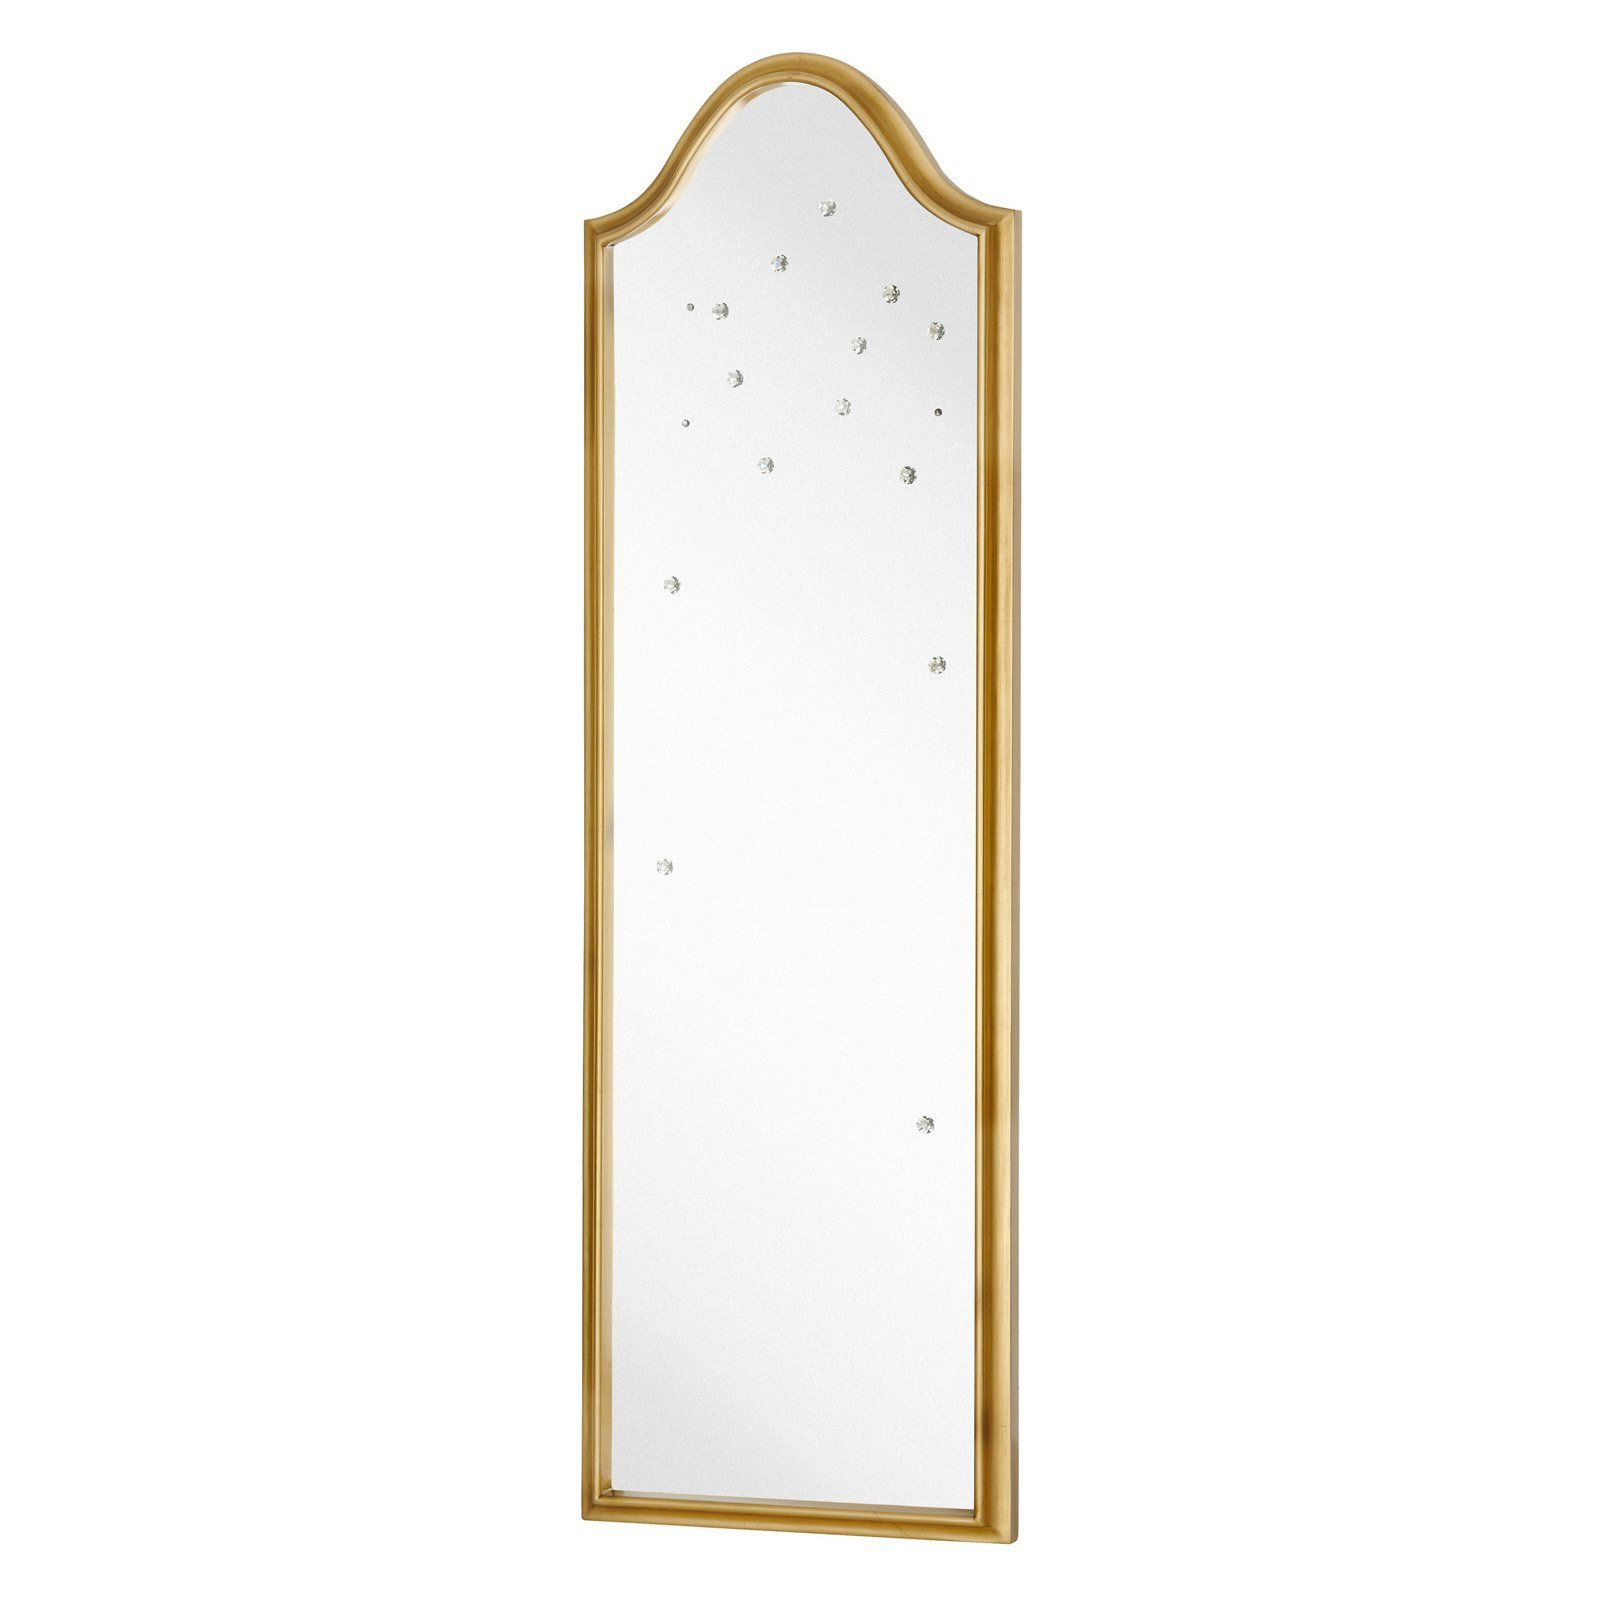 Narrow Wall Mirrors With 2019 Majestic Tall Narrow Wall Mirror With Gold Leaf Frame And Crystal (View 18 of 20)